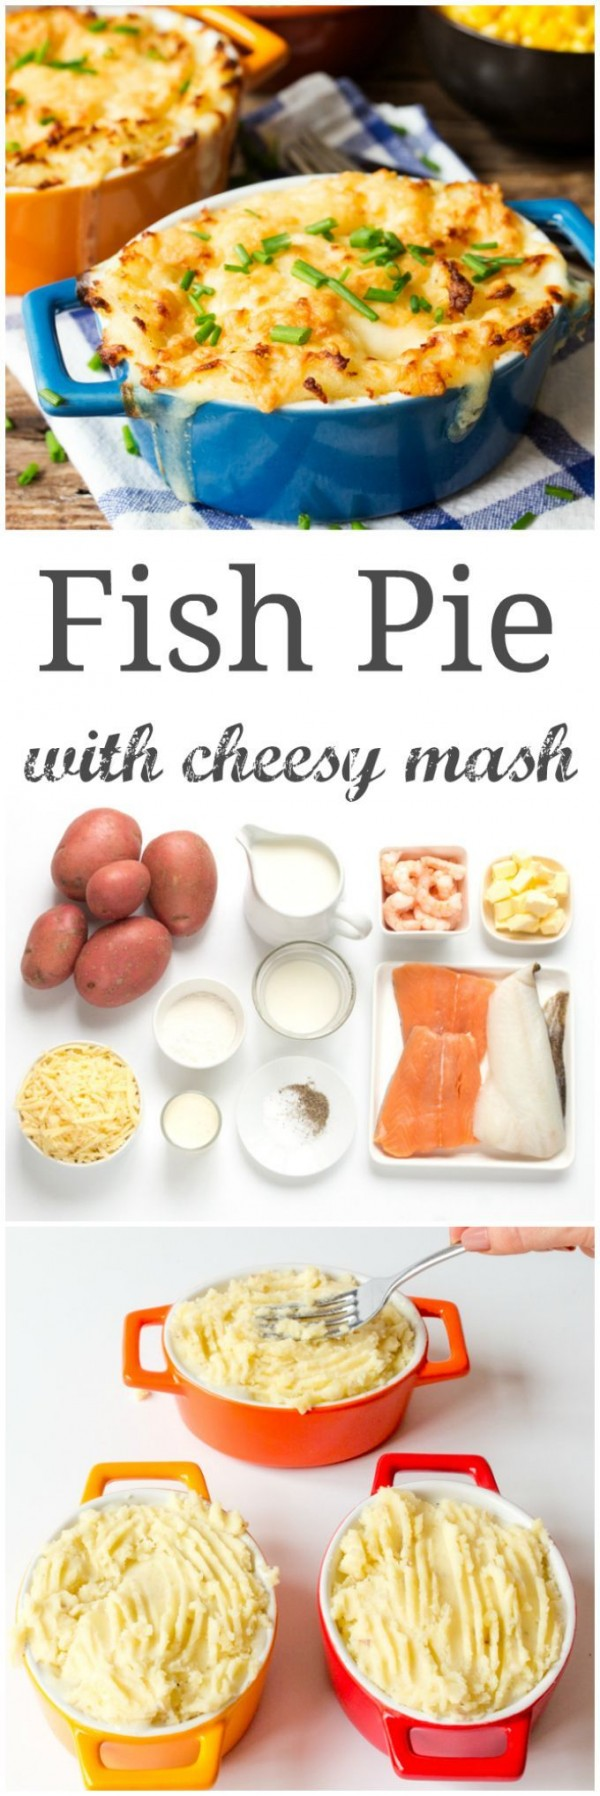 Check out this recipe for fish pie with cheesy mash. Yummy! #RecipeIdeas @recipes_to_go